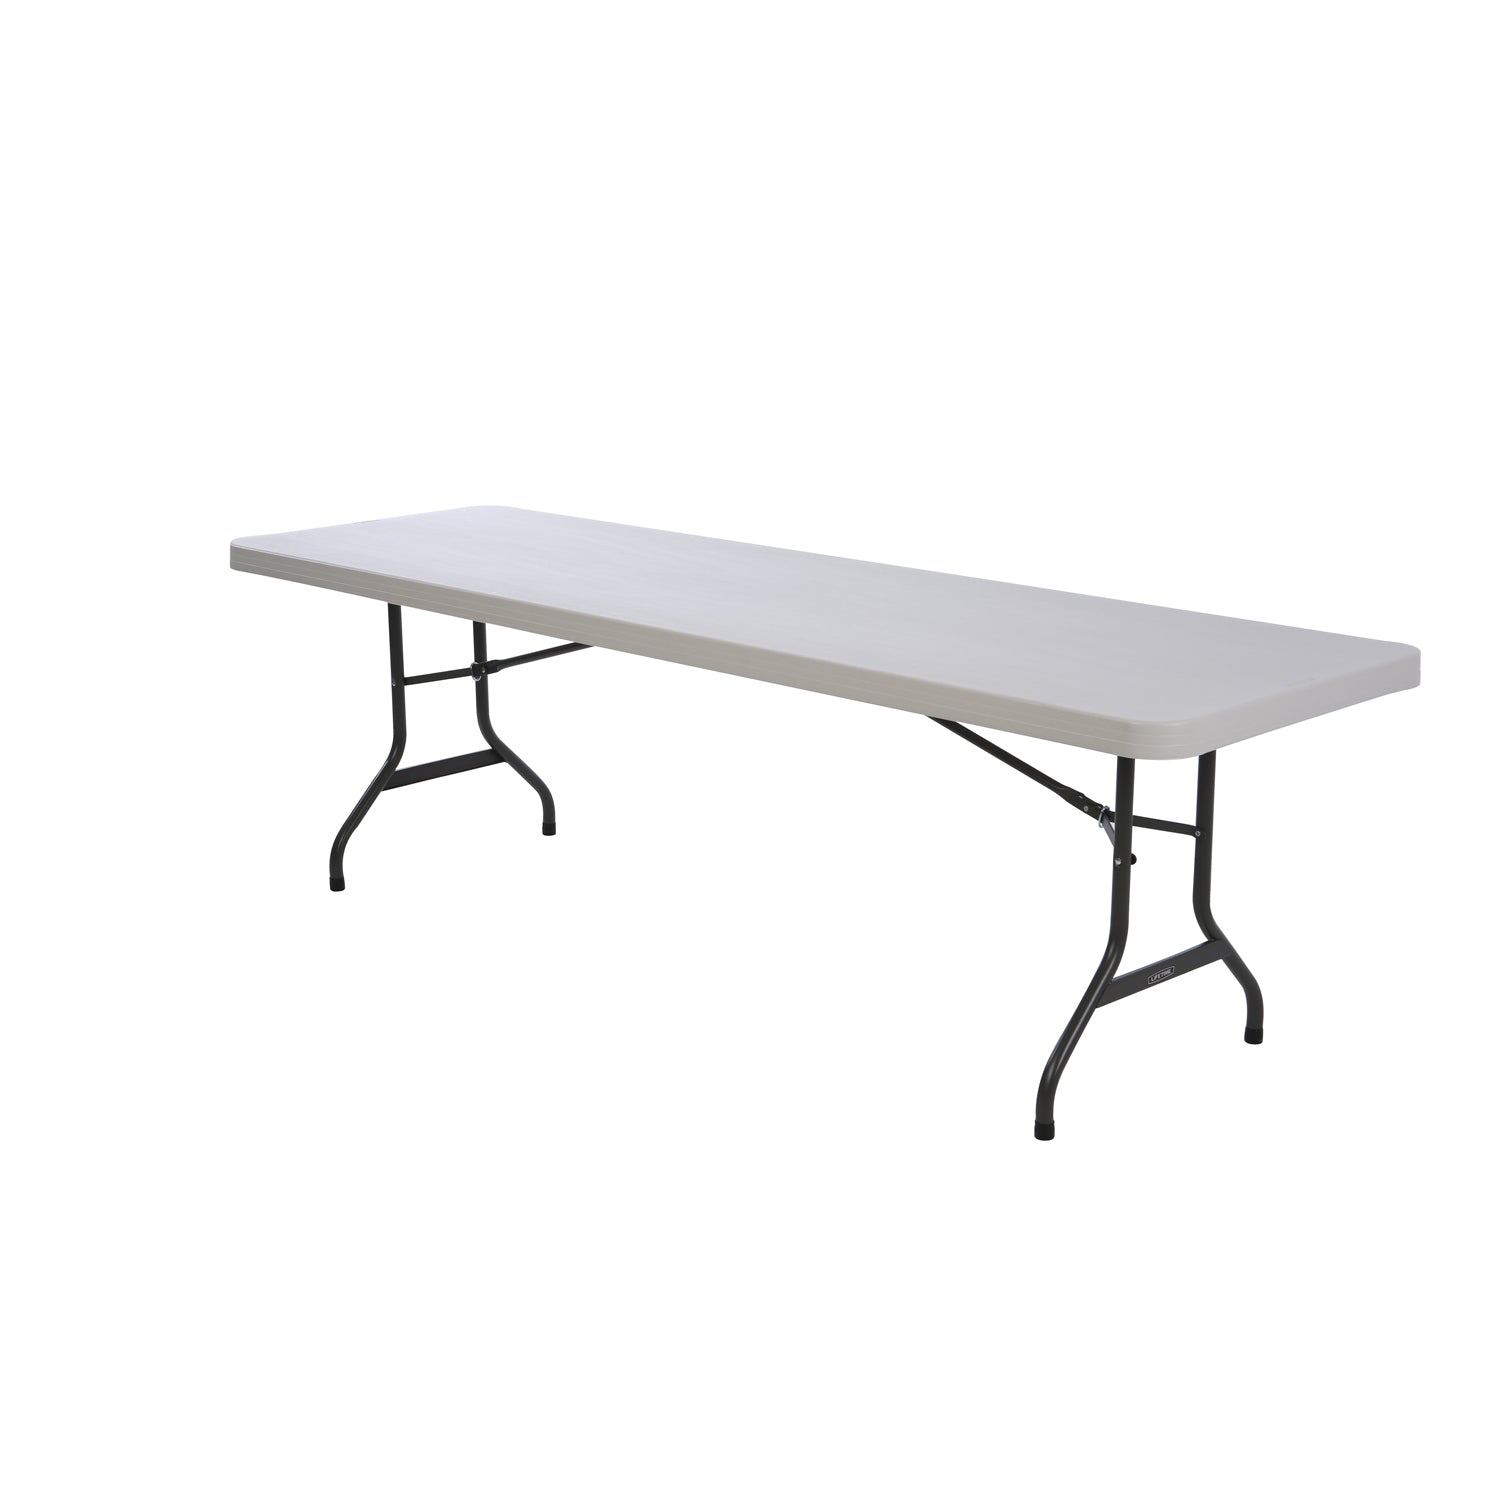 Folding Table 8 Foot Commercial Grade 2980 2984